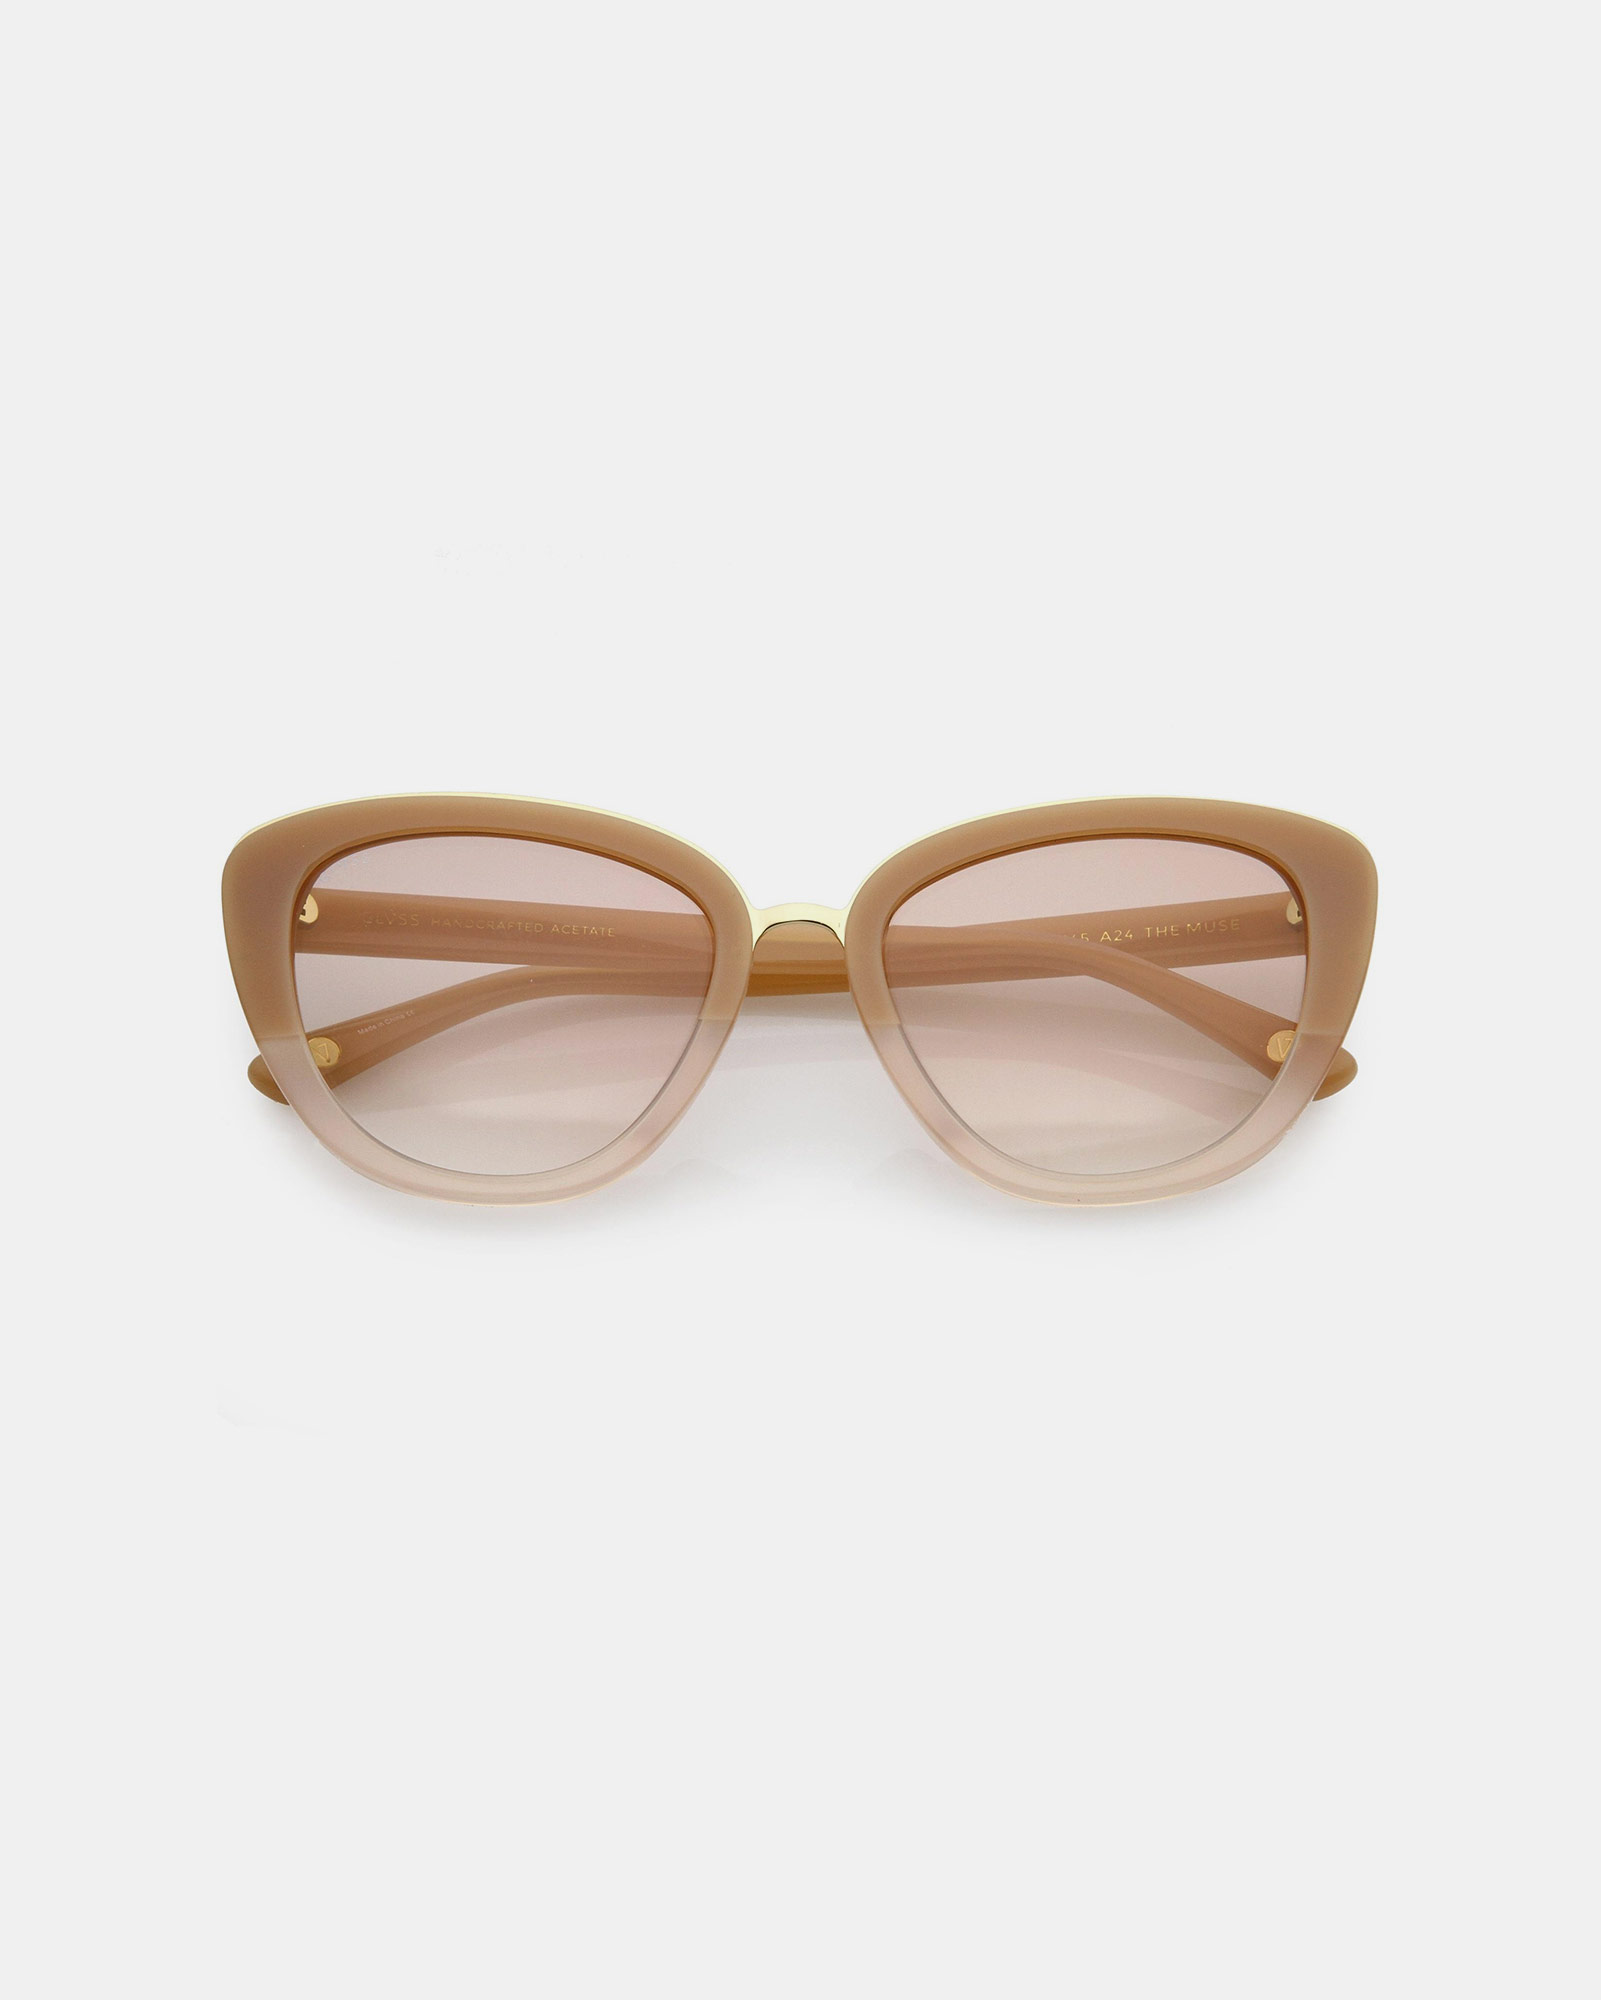 GLVSS The Muse Nude Clear-Gold Sunglasses